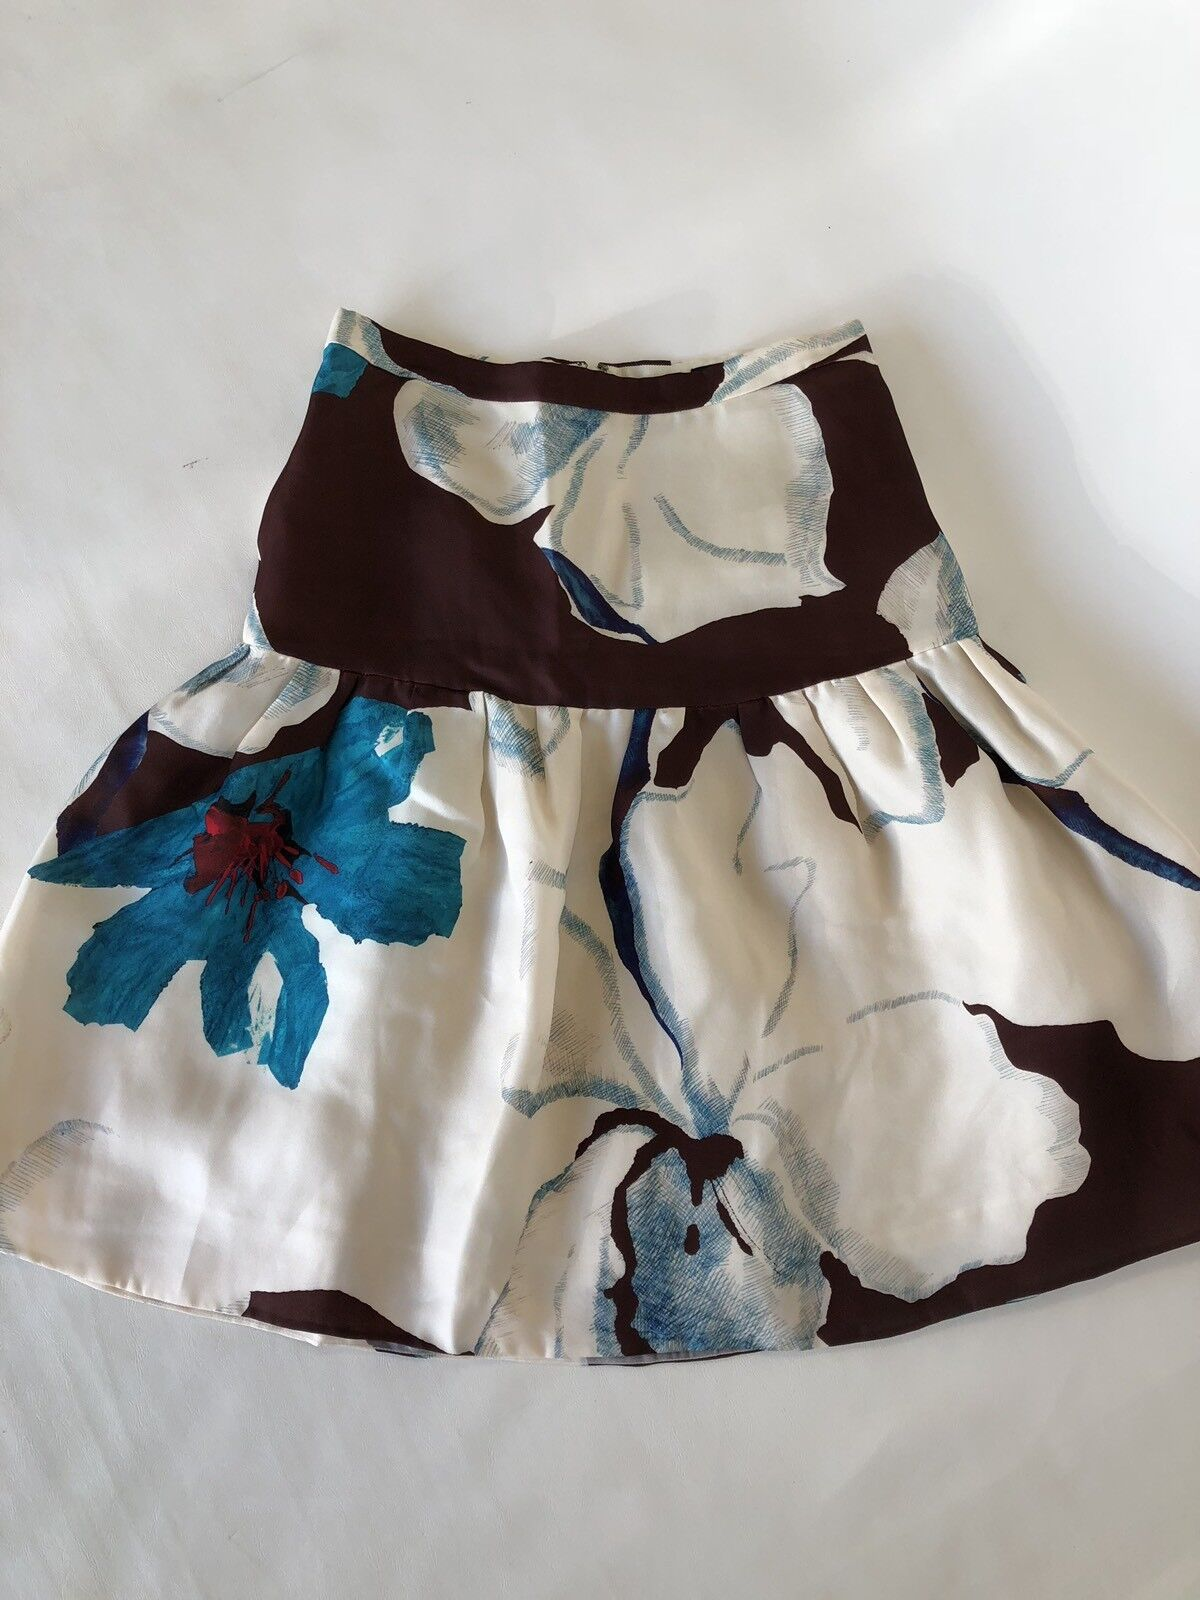 JCrew Collection Floral Fit-and-flare Skirt Sample Size 4 Multicolor Knee Length